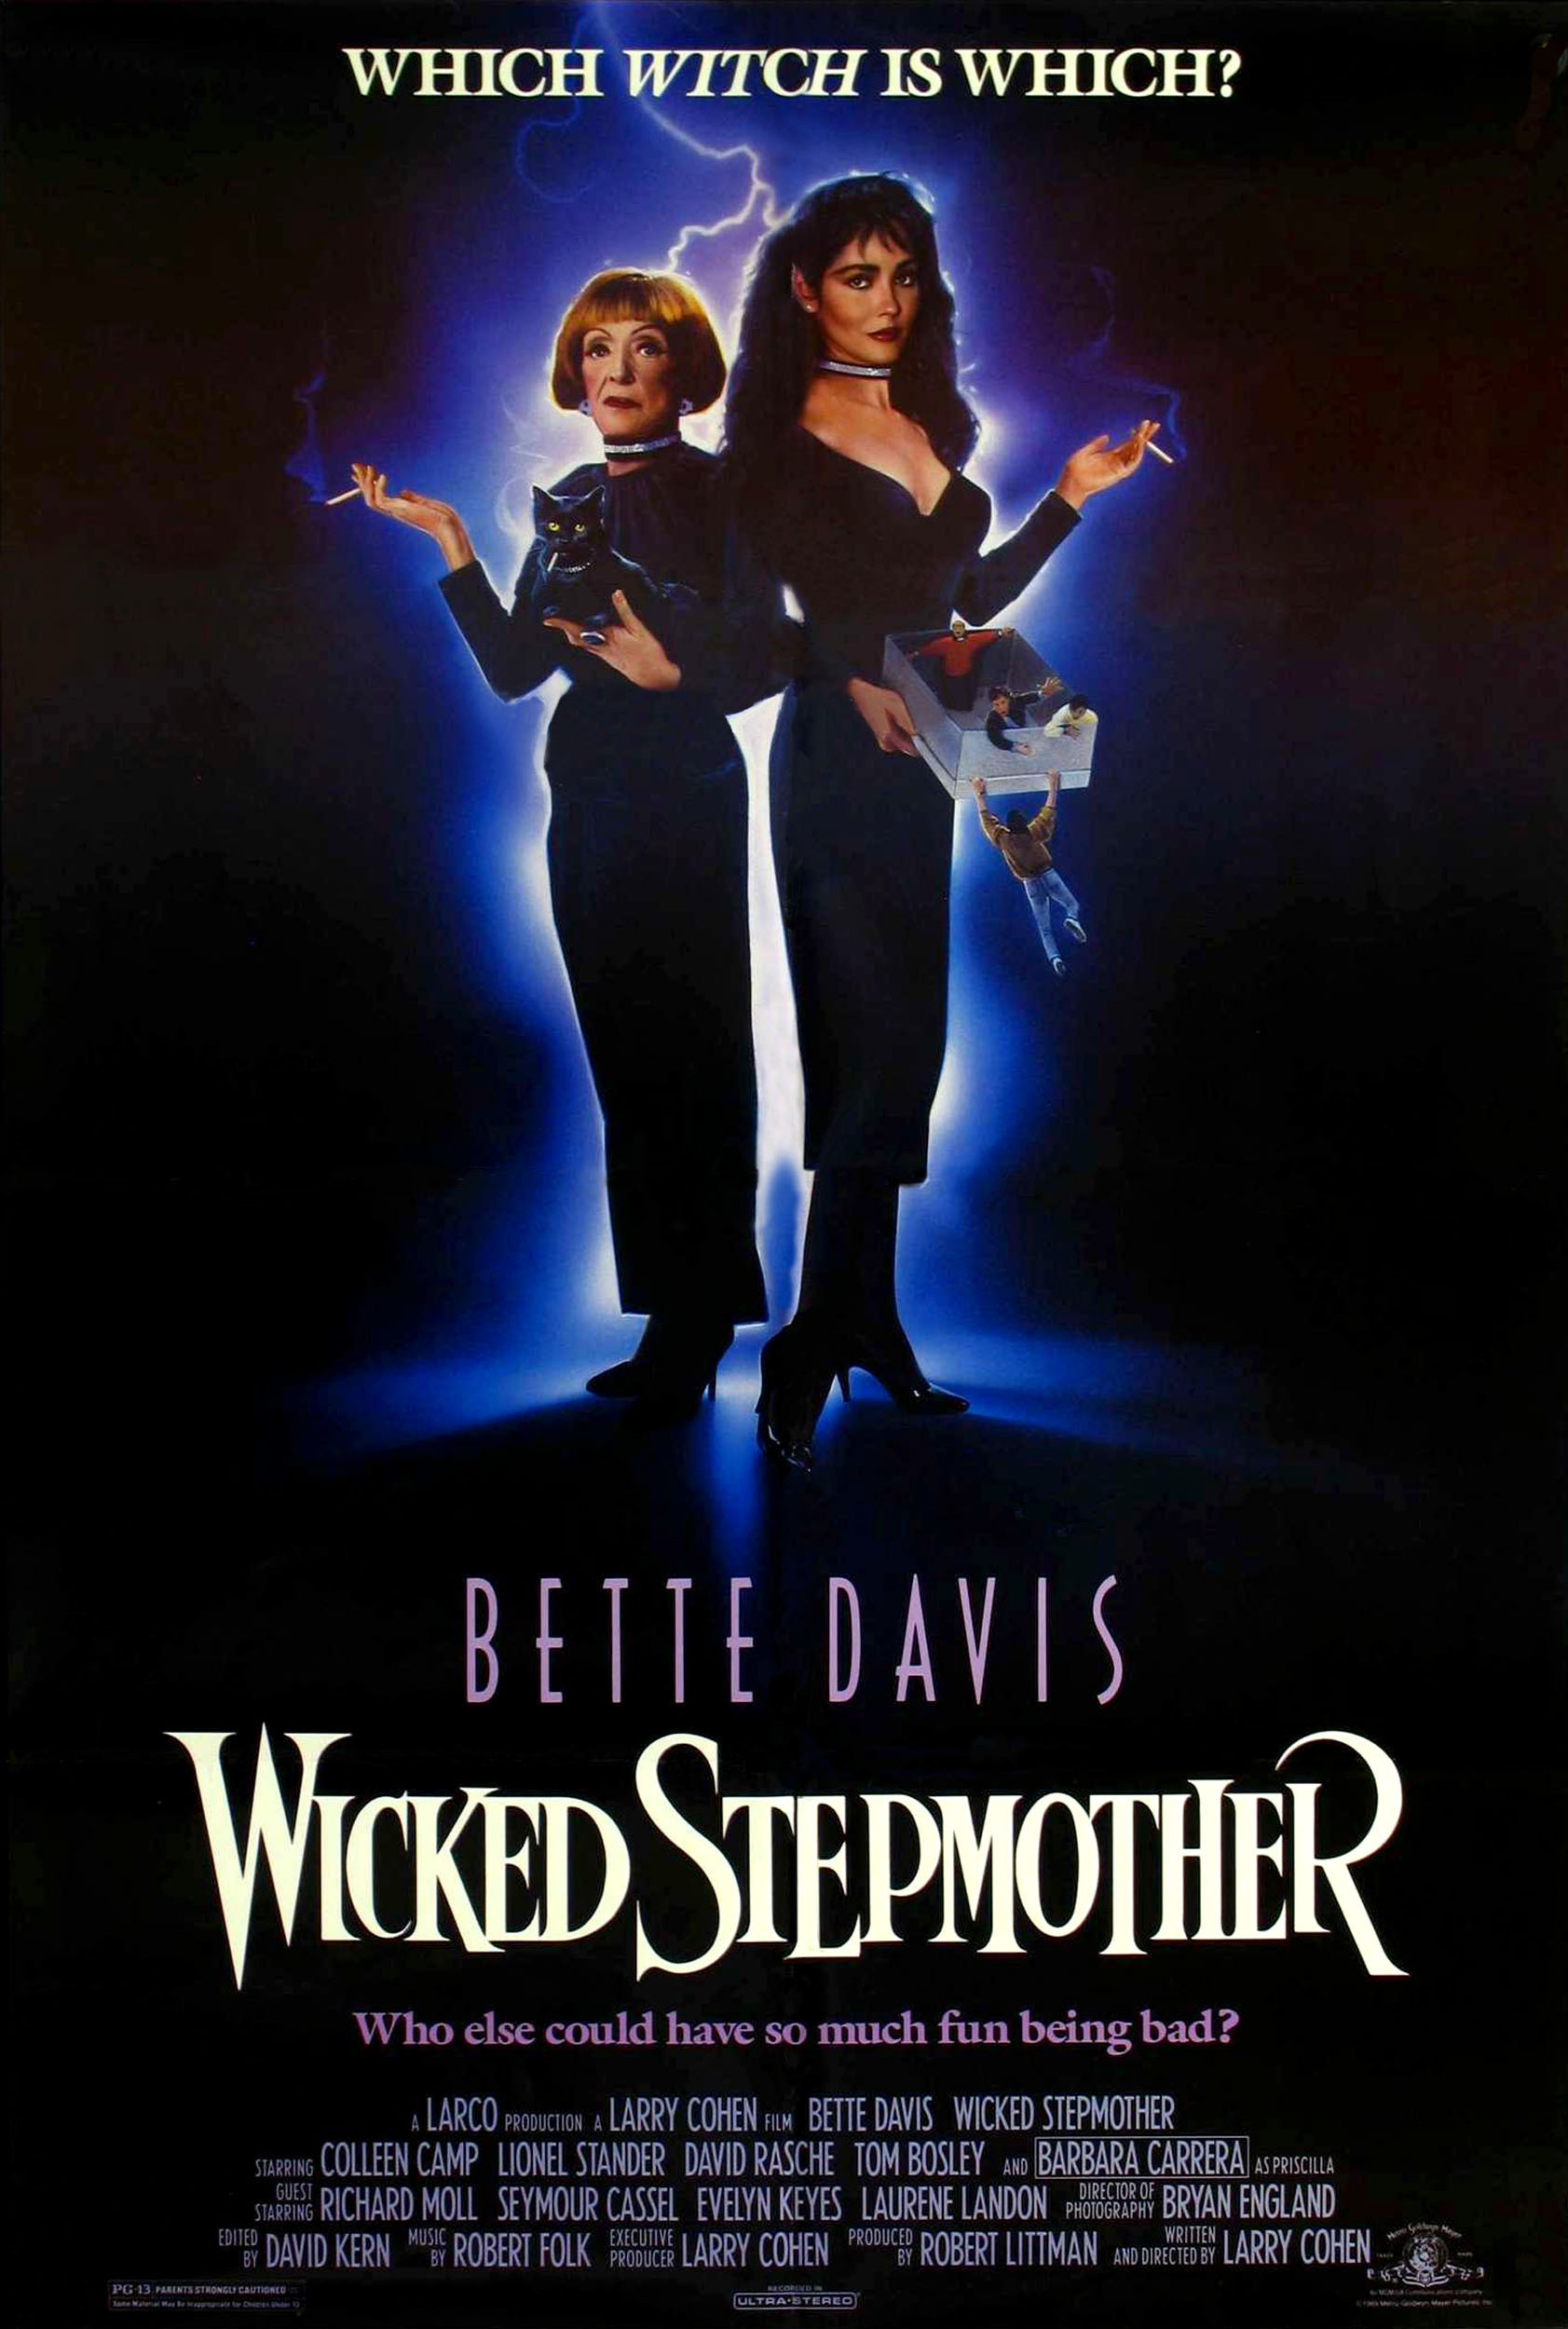 Wicked Stepmother (1989) – The Motion Pictures